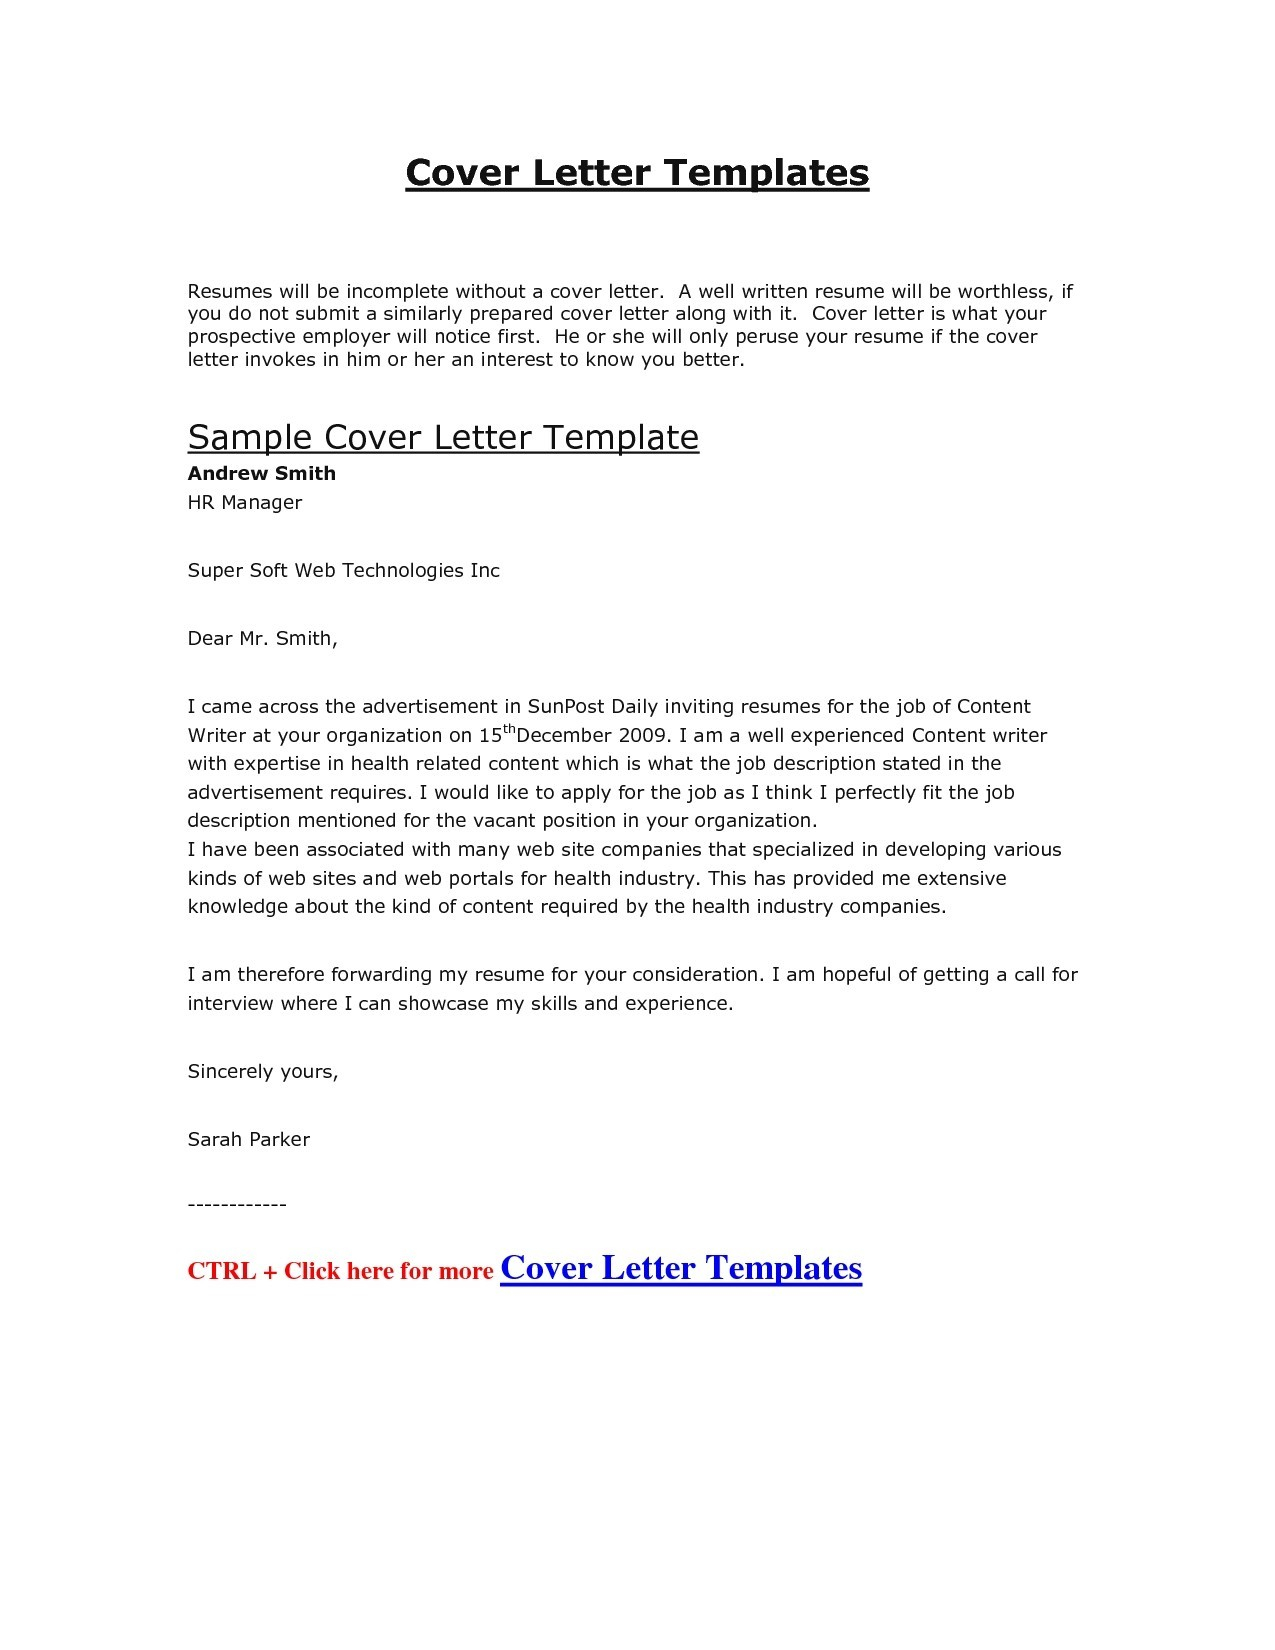 Job Application Letter Template Collection Letter Template Collection